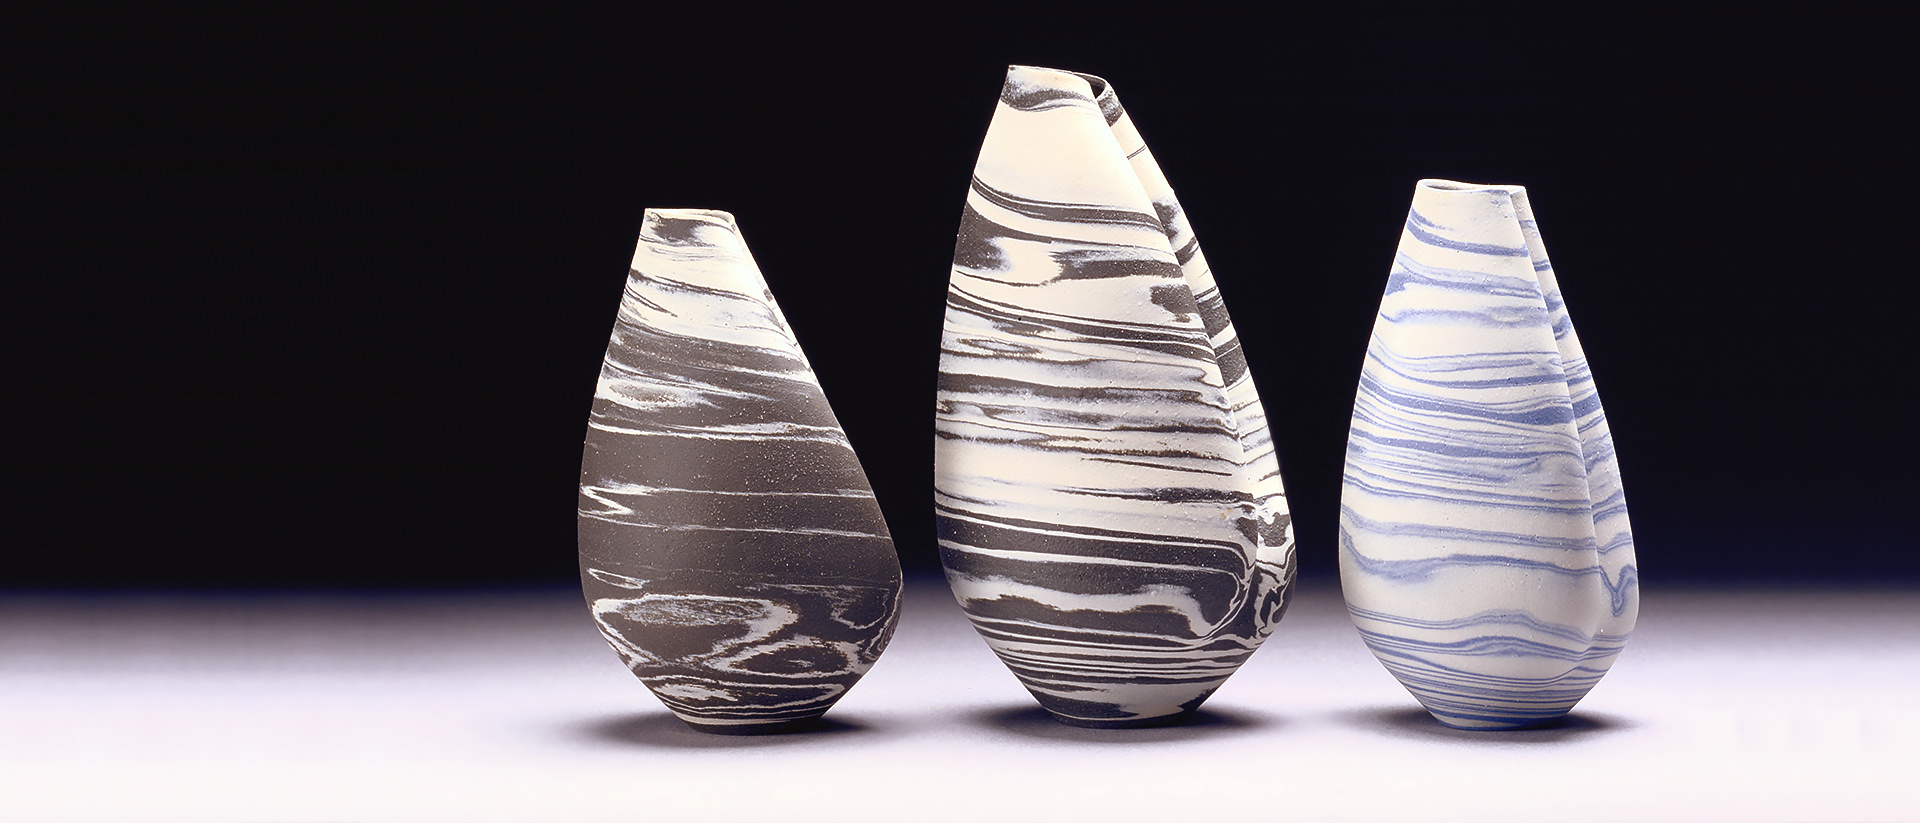 Robin Hopper, Shell Forms No.5, 1 and 2, 1974, ceramic, left to right: No.5: 20 cm x 12 cm (86-115), No. 1: 26 cm x 14 cm (86-113), No. 2: 20 cm x 13 cm (86-114). Collection: Canadian Museum of History